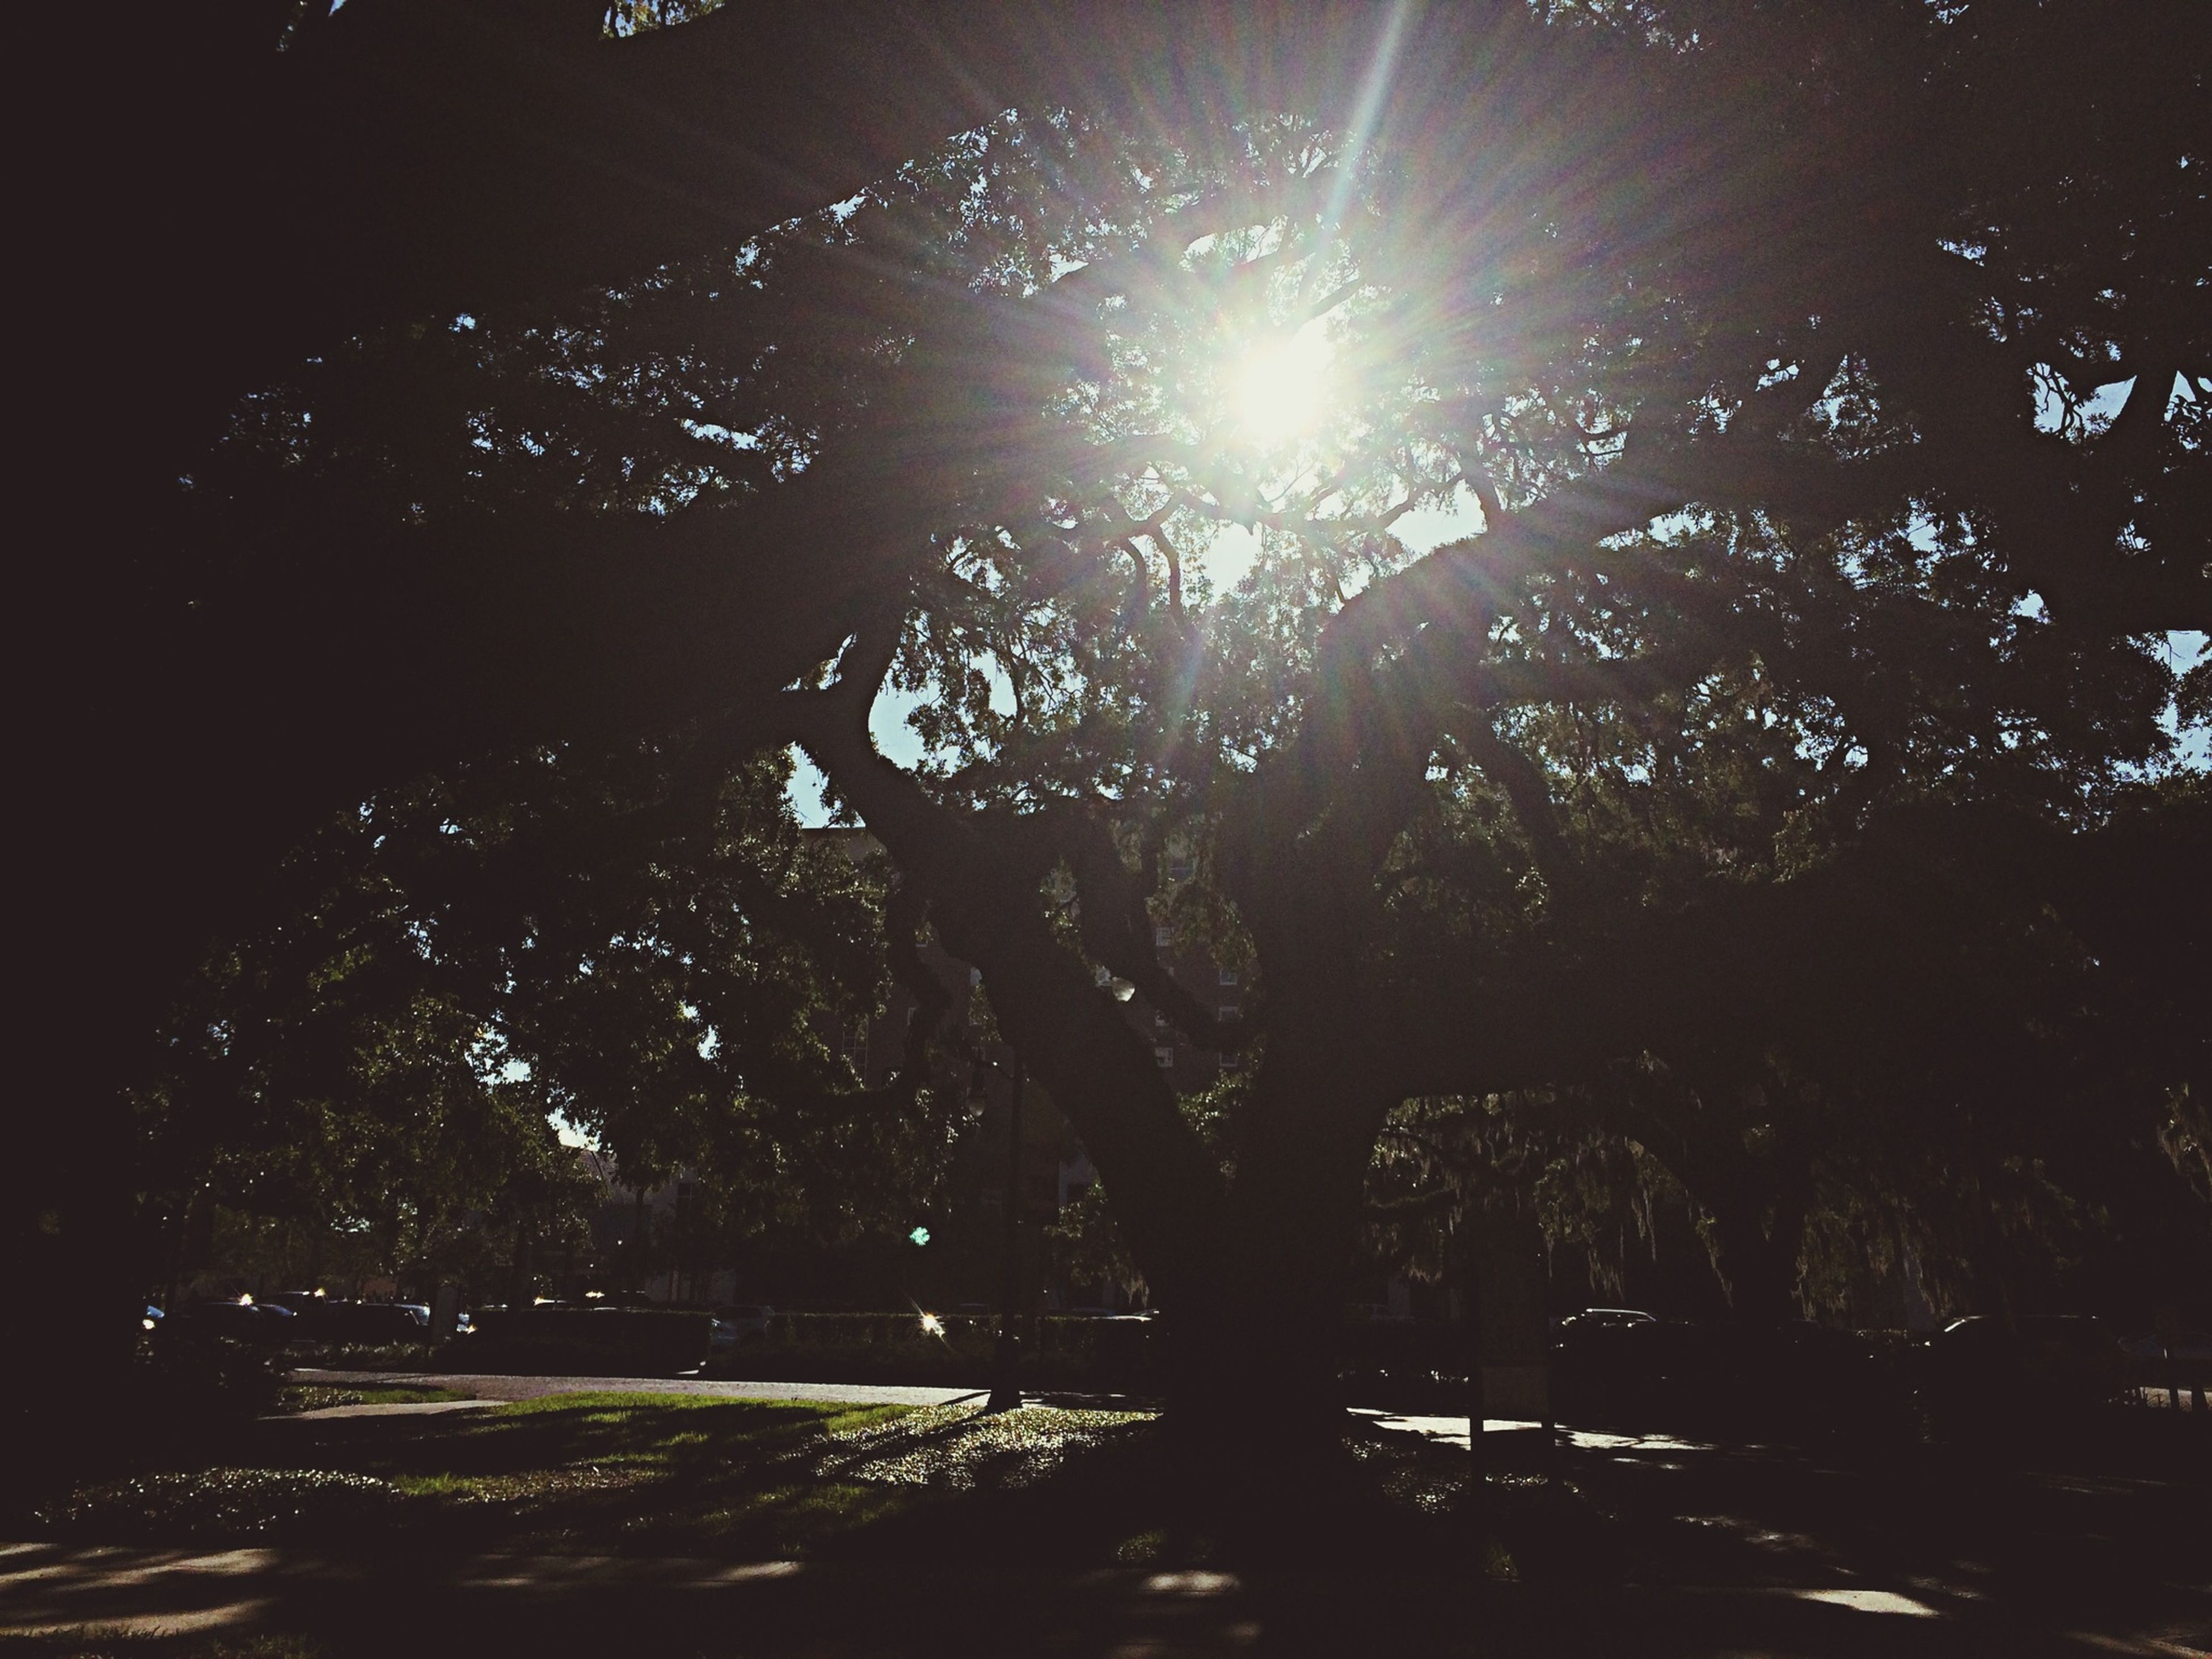 tree, sunlight, growth, sun, branch, silhouette, nature, tranquility, beauty in nature, sunbeam, lens flare, night, outdoors, low angle view, tranquil scene, sky, scenics, no people, water